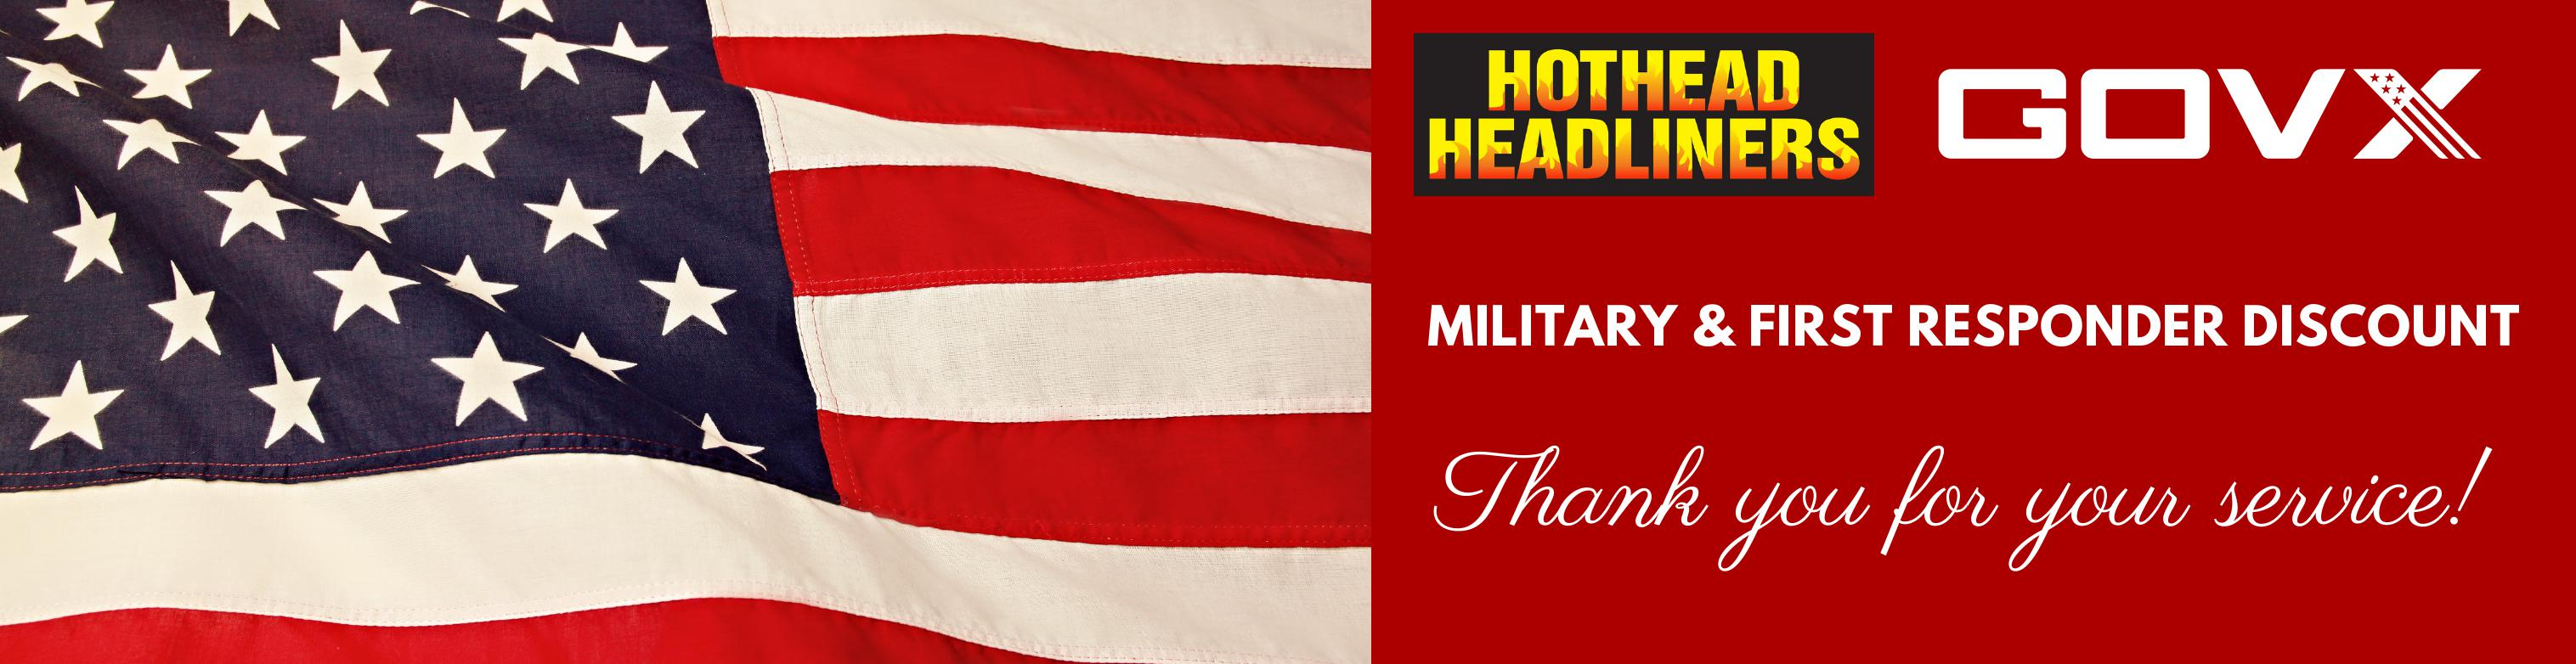 Hothead Headliners Govx Military and First Responders Discount